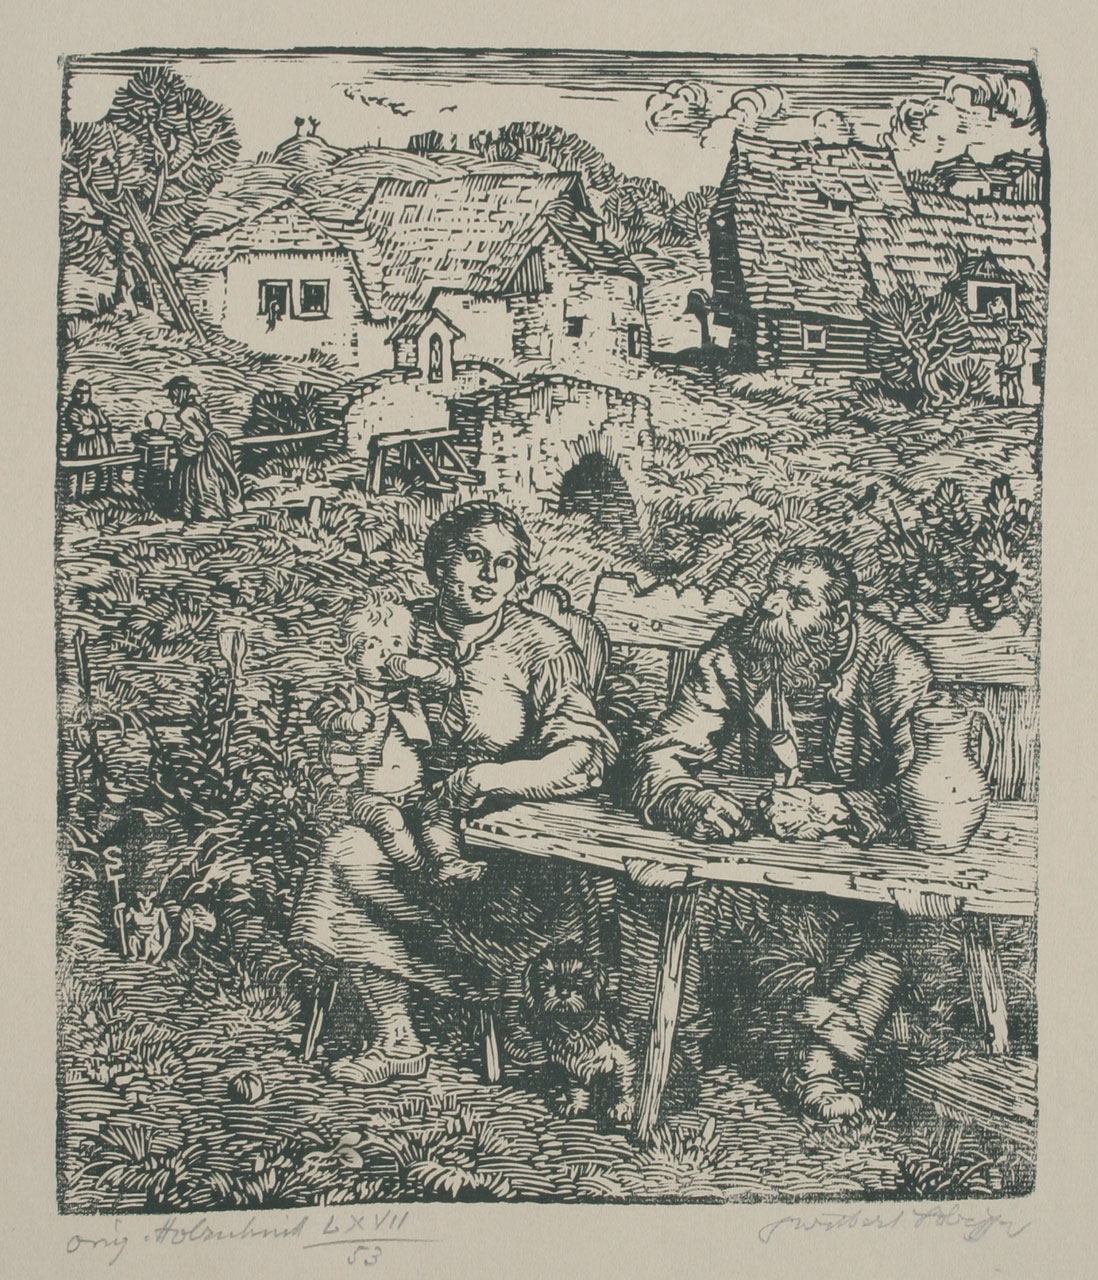 Switbert Lobisser (1878-1943) Feierabend, 1928, woodcut, 24x20cm, signed, titled and numbered 53 from op 67